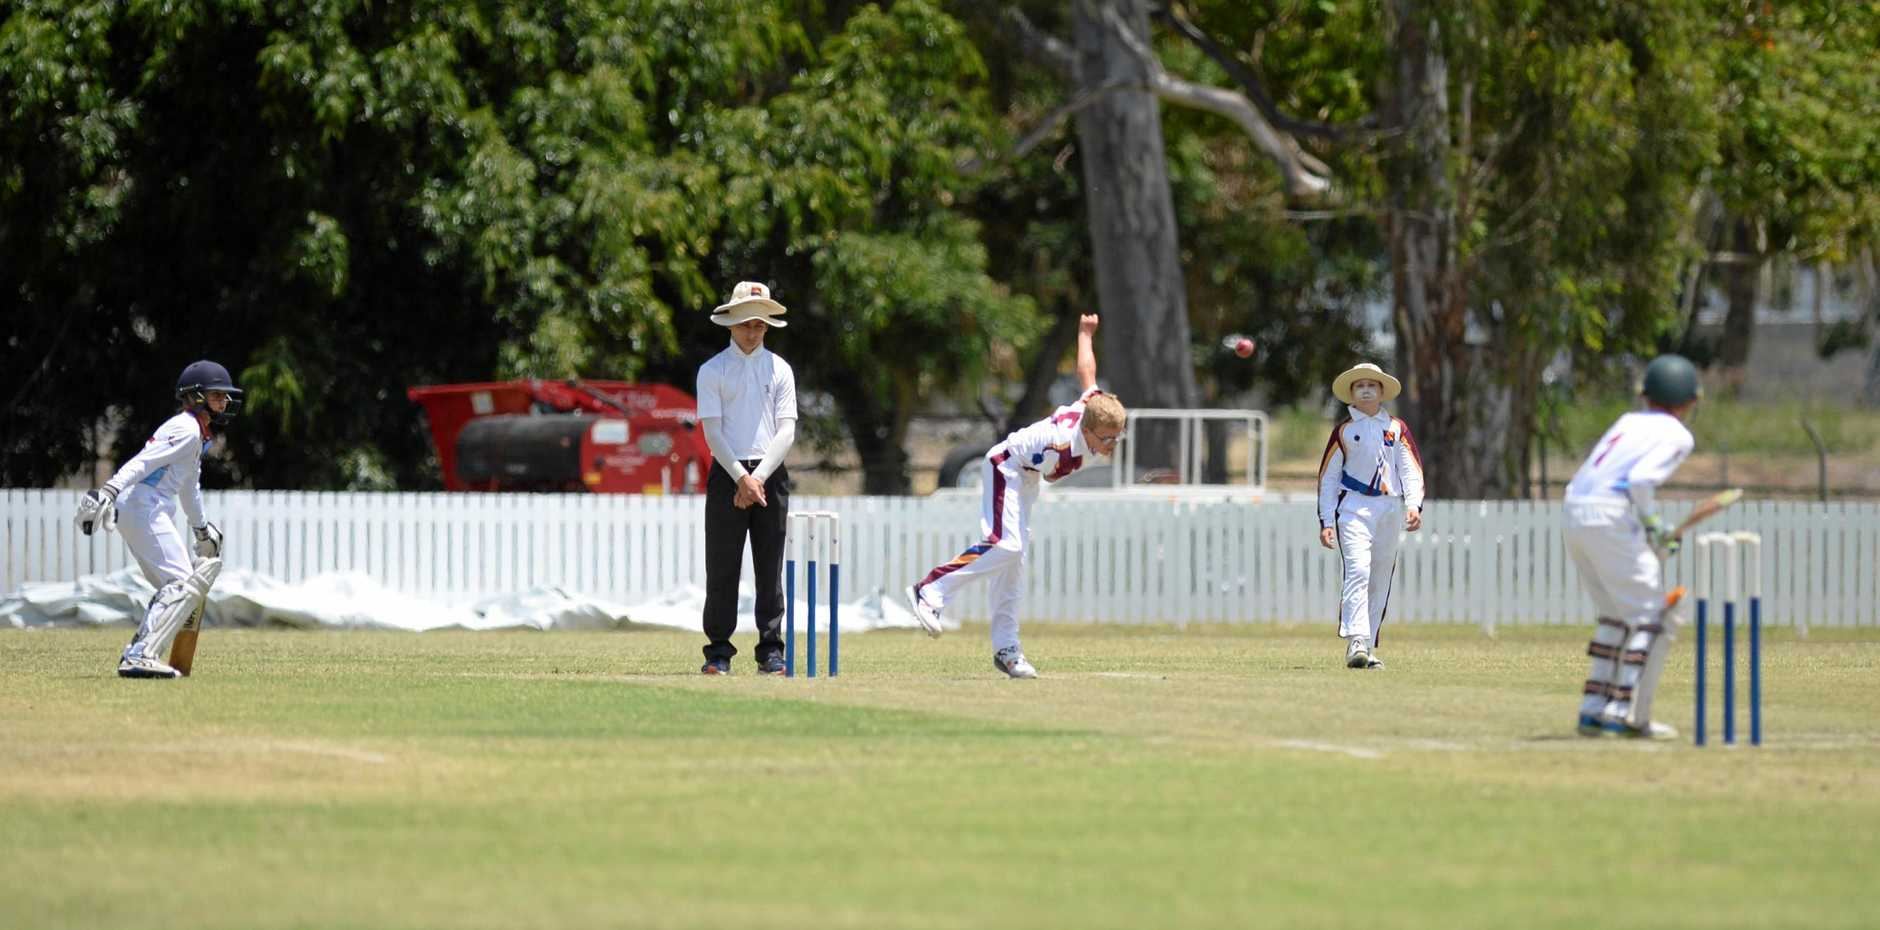 Brisbane North's Ed Kasprowicz sends a delivery down against Central Queensland at the Rockhampton Cricket Ground.